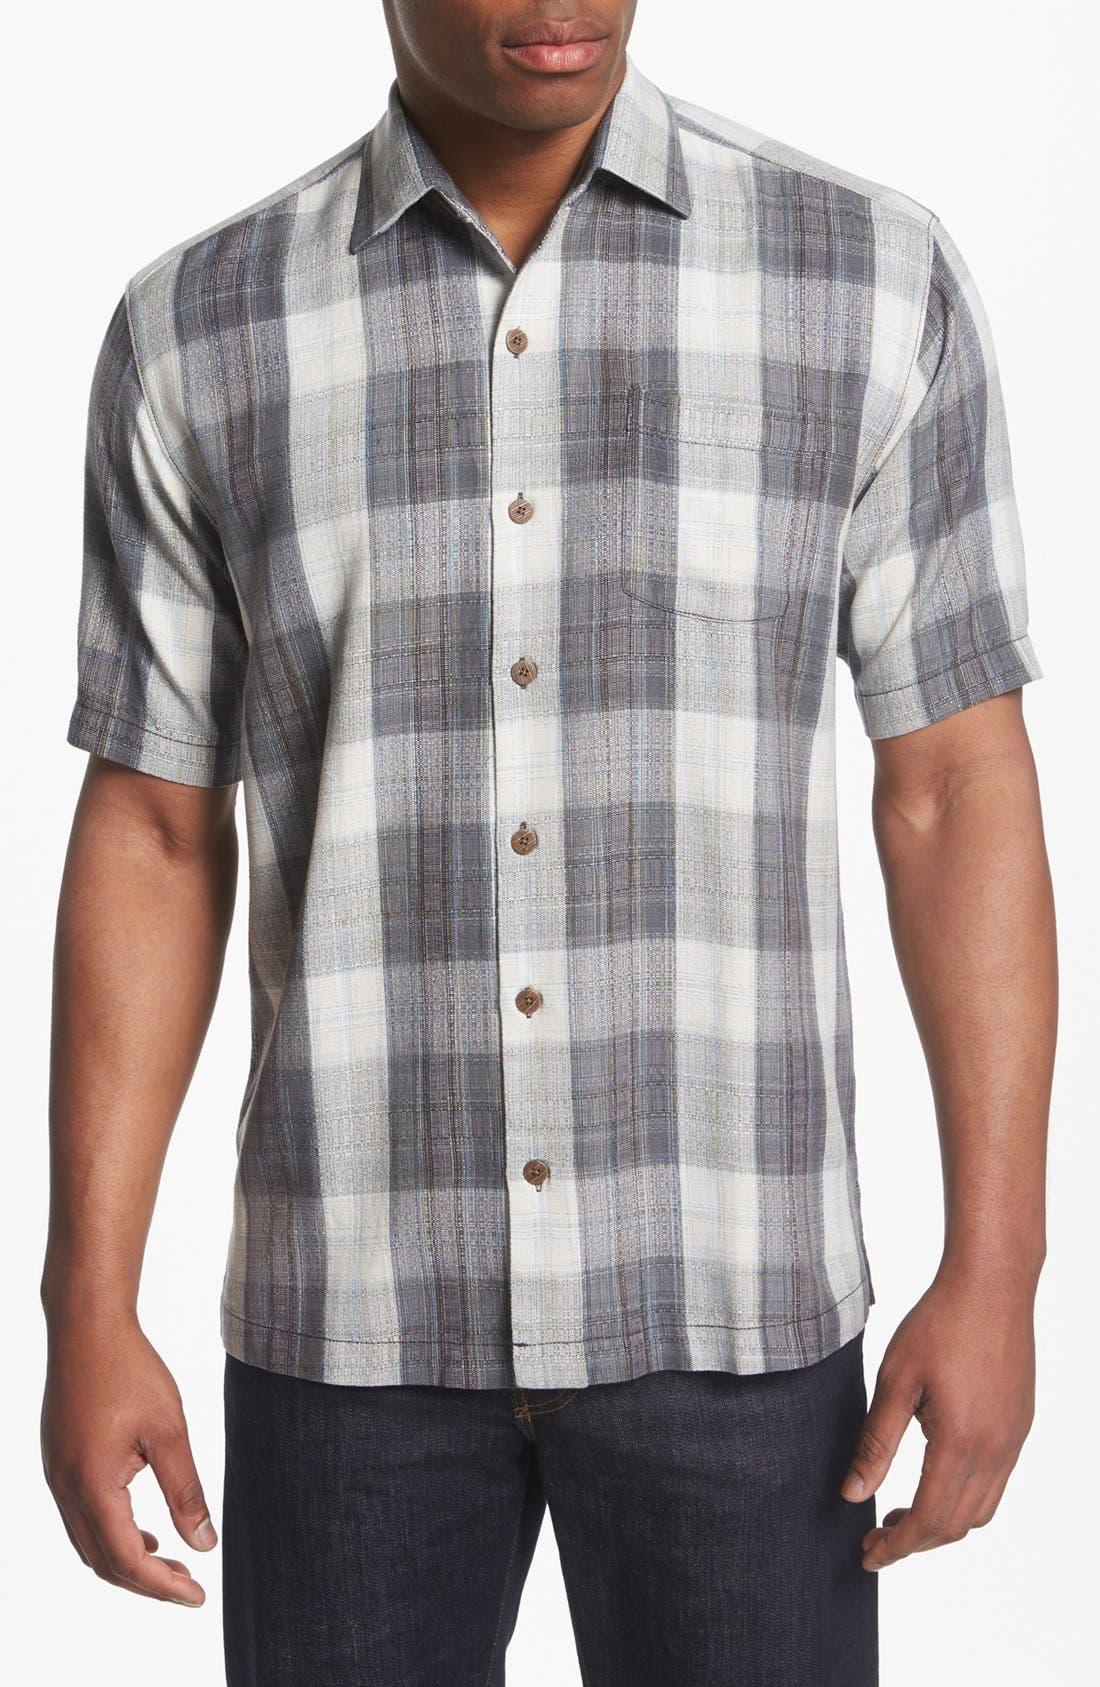 Main Image - Tommy Bahama 'Seaside Plaid' Silk Campshirt